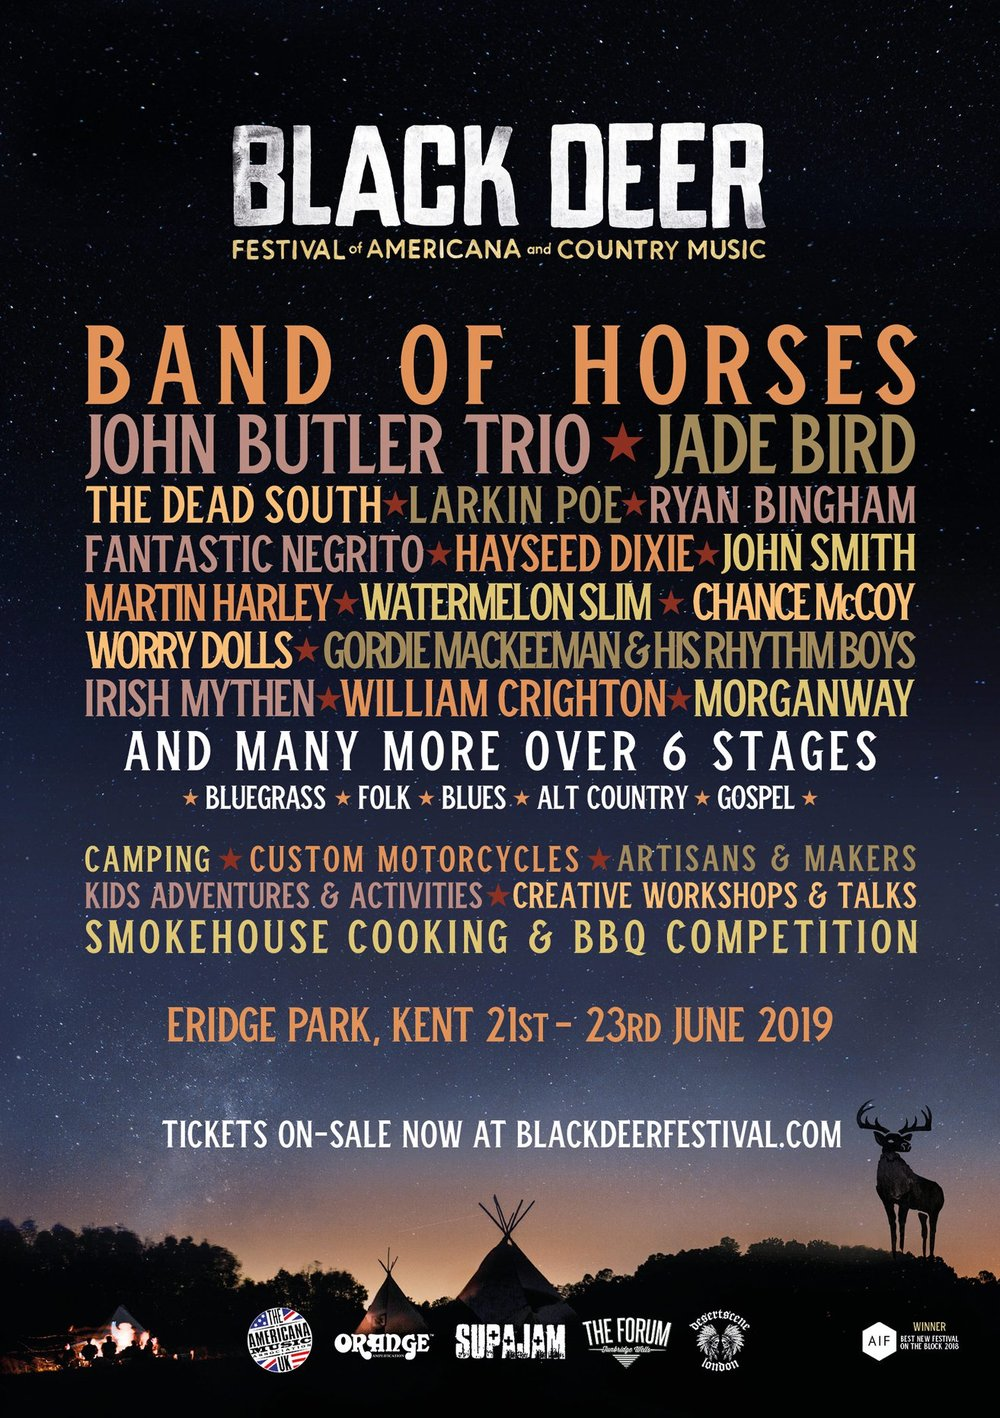 Black Deer announces first names for 2019 - Multi-award winning Americana and Country festival Black Deer have announced a plethora of names that will play next years edition. Including the first headliner, Band Of Horses.